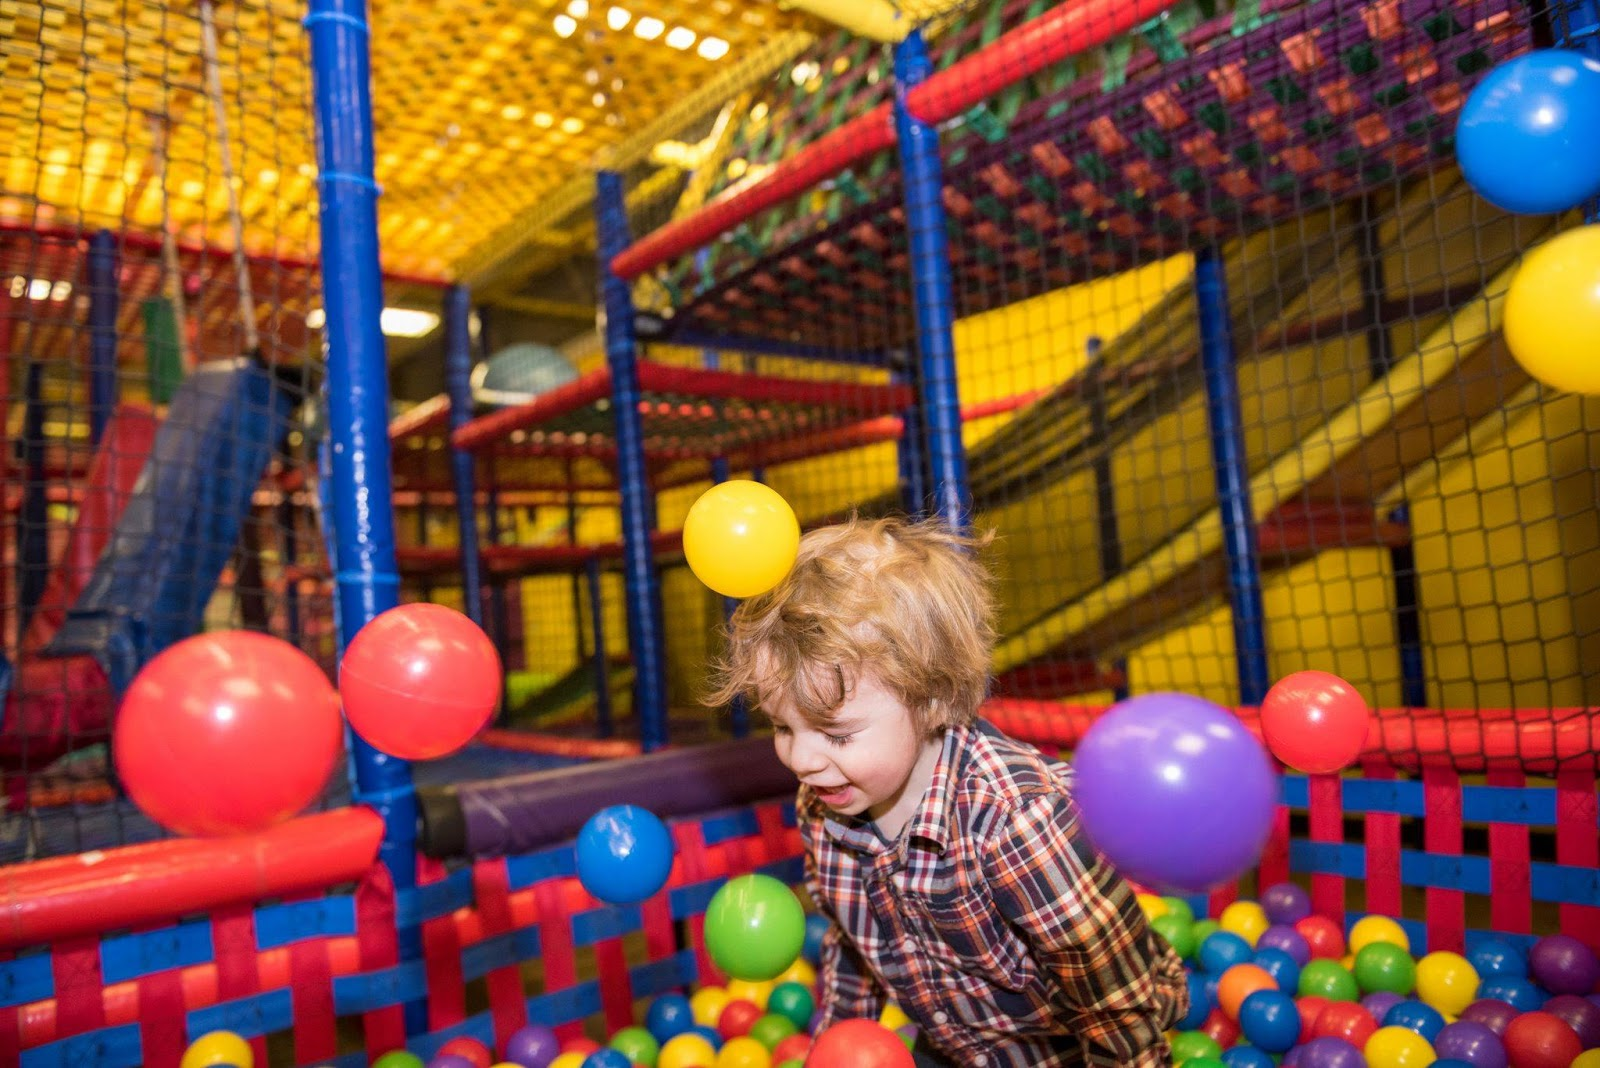 A boy is happily playing in a ball pit at Giggles and Smiles